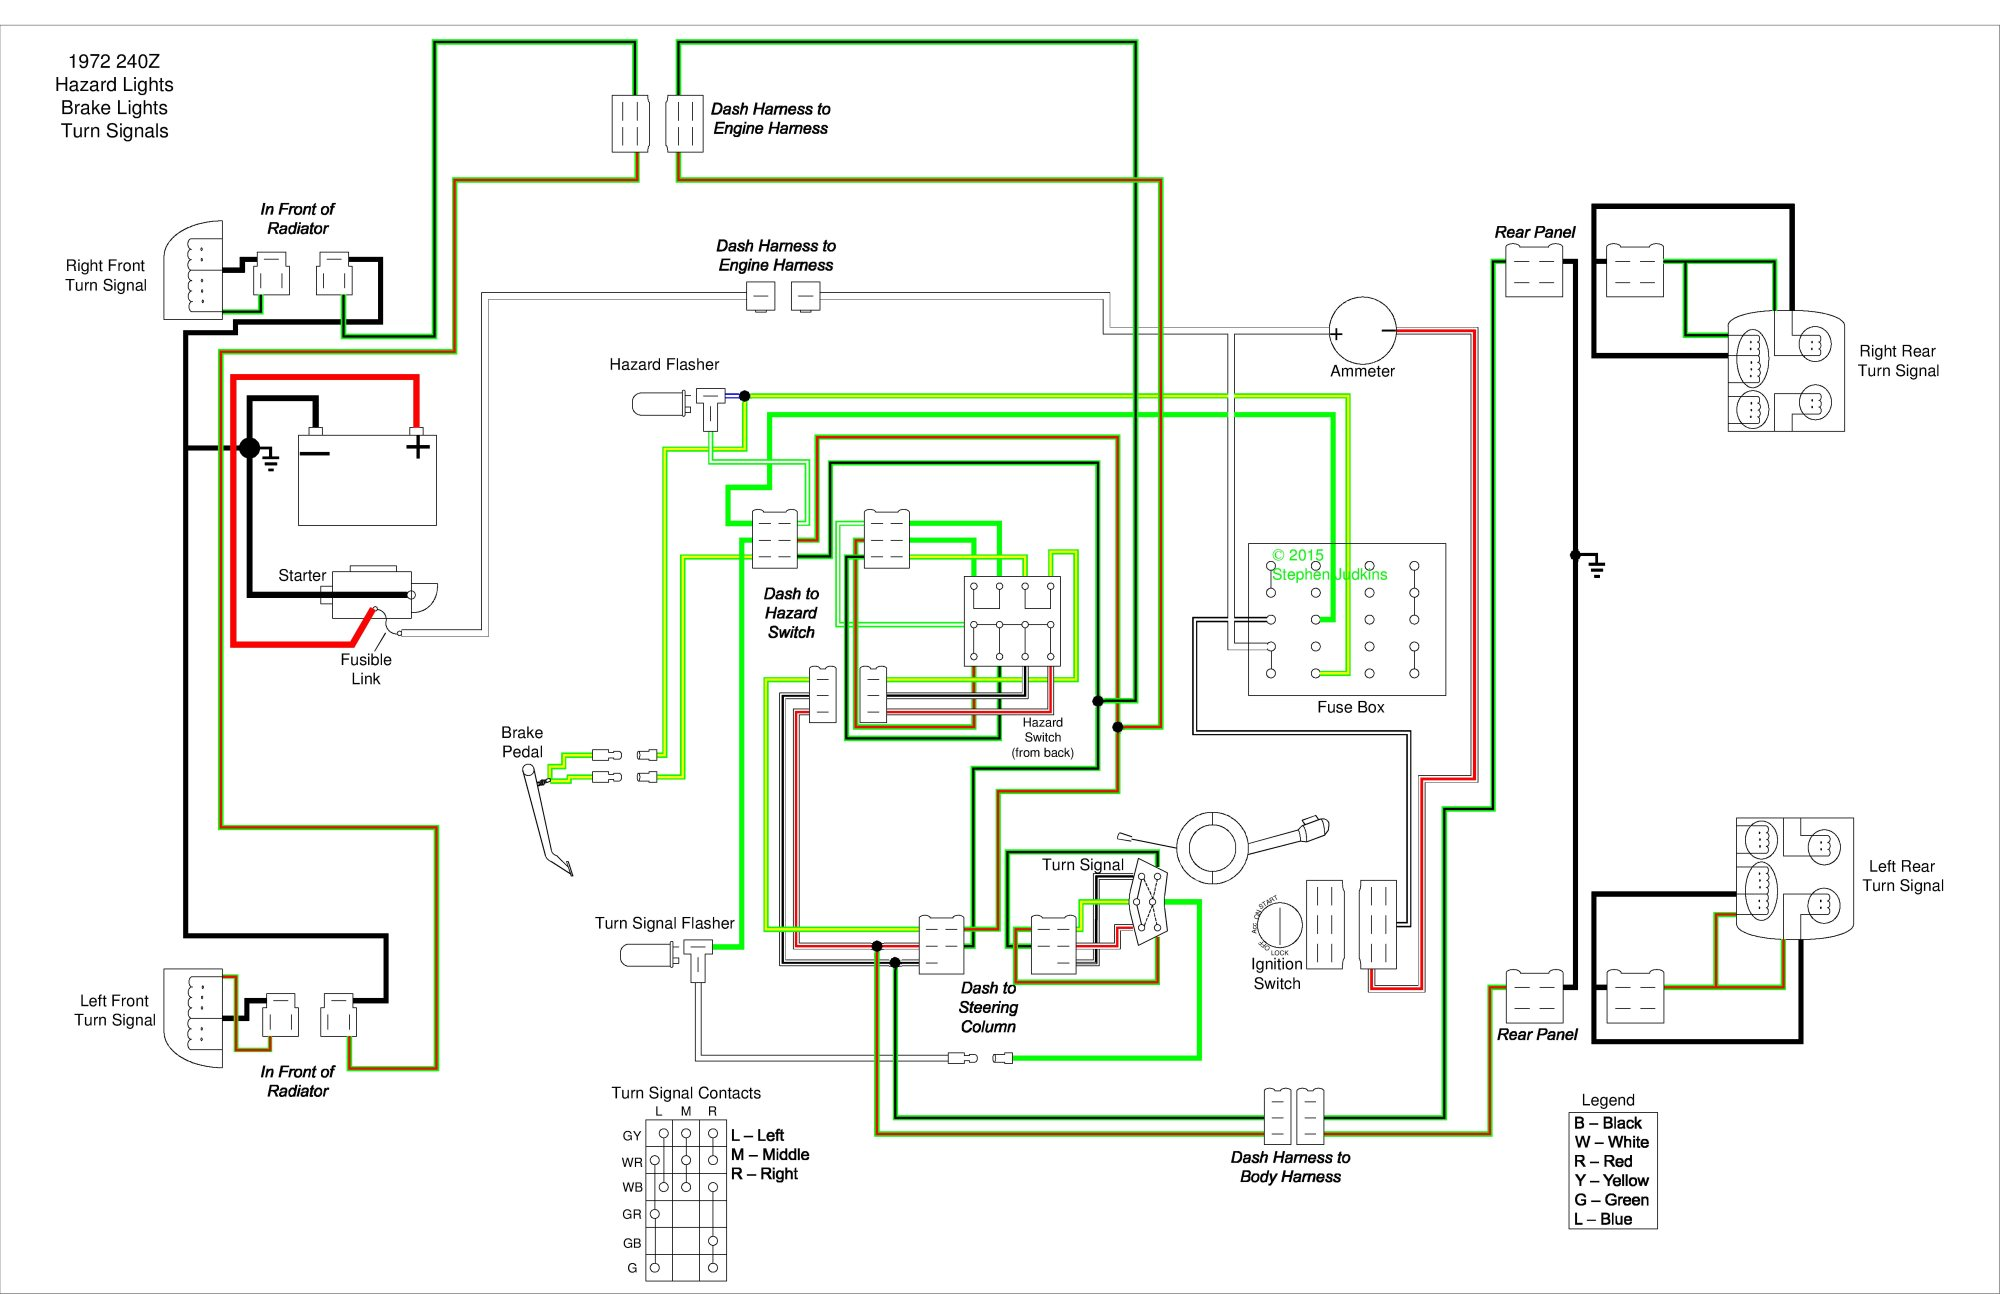 hight resolution of september 2013 circuit harness wiring wiring diagram database wiring diagram for car september 2013